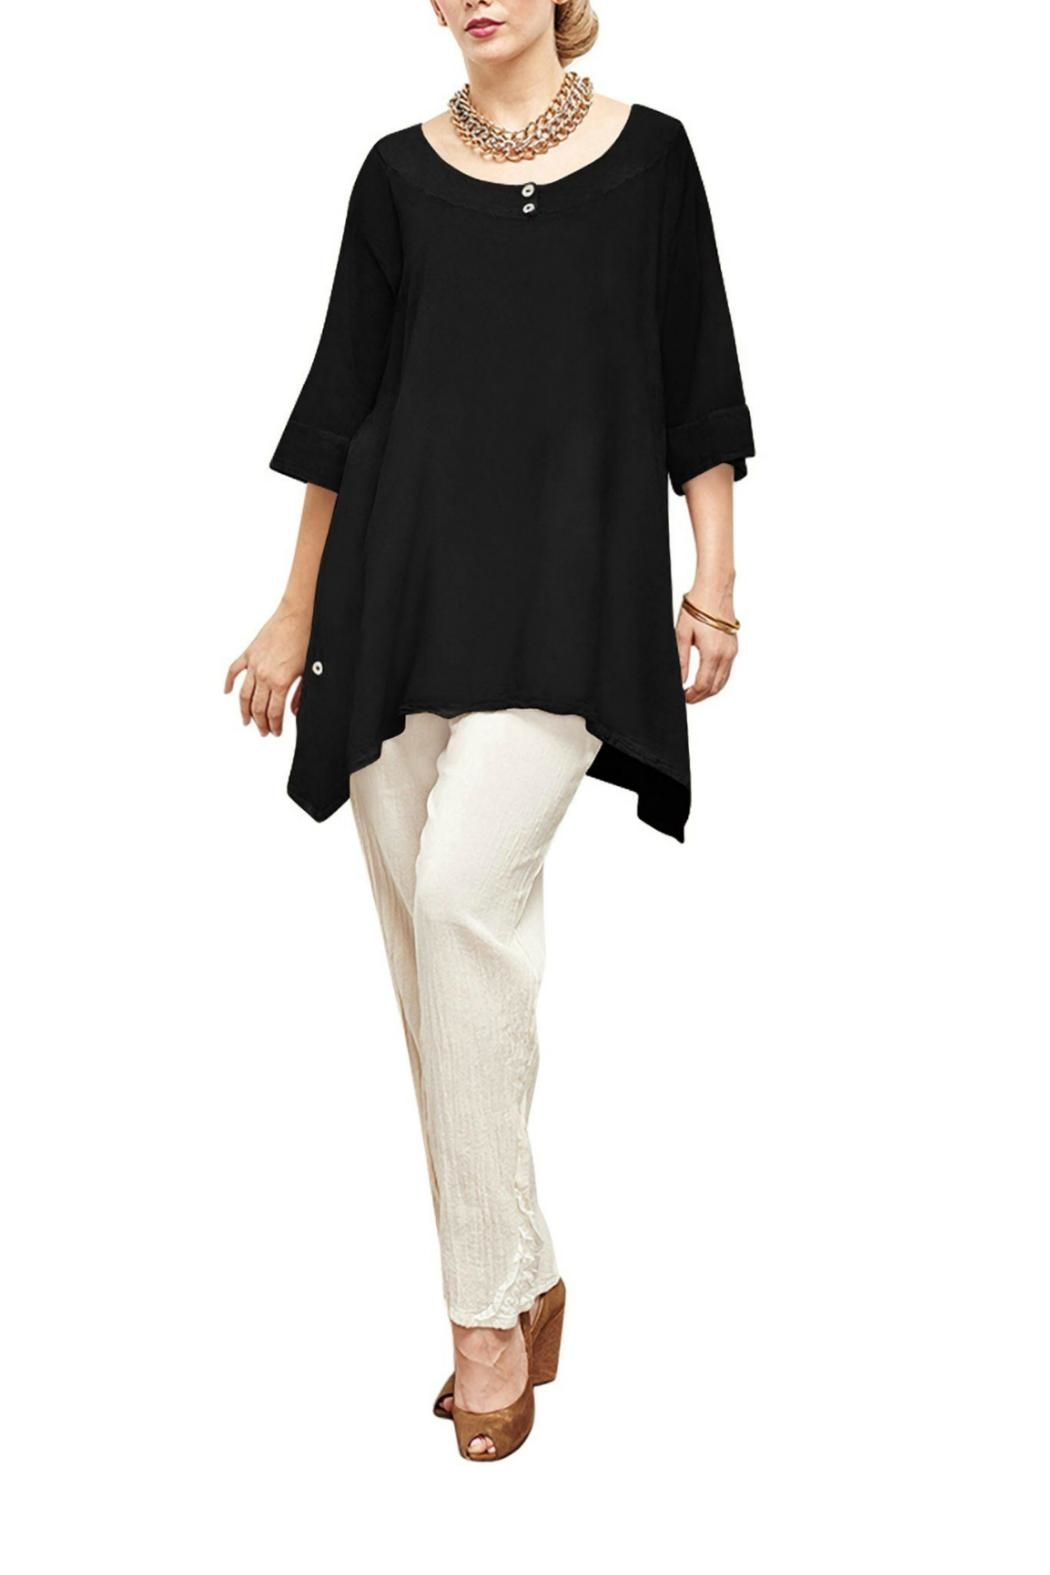 Oh My Gauze Marcy Loose Blouse - Main Image